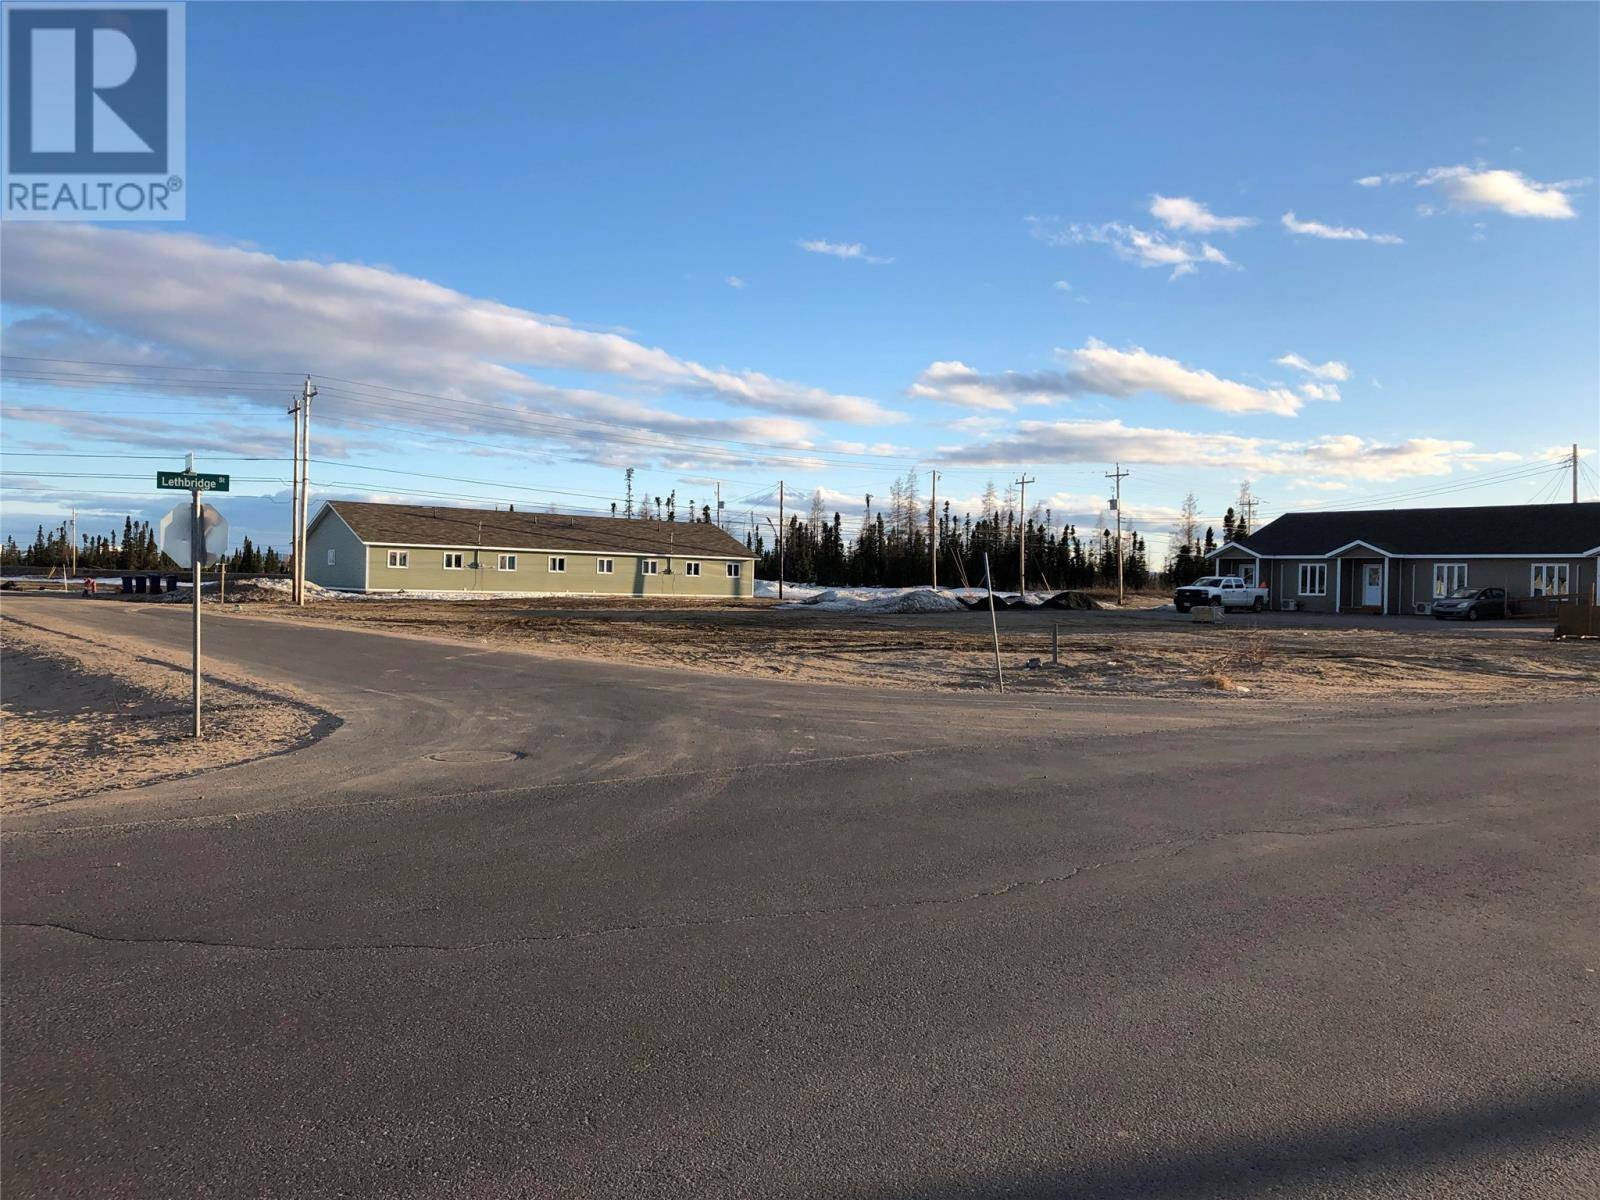 Home for sale at 15 Lethbridge St Unit 11-26 Happy Valley Goose Bay Newfoundland - MLS: 1188147